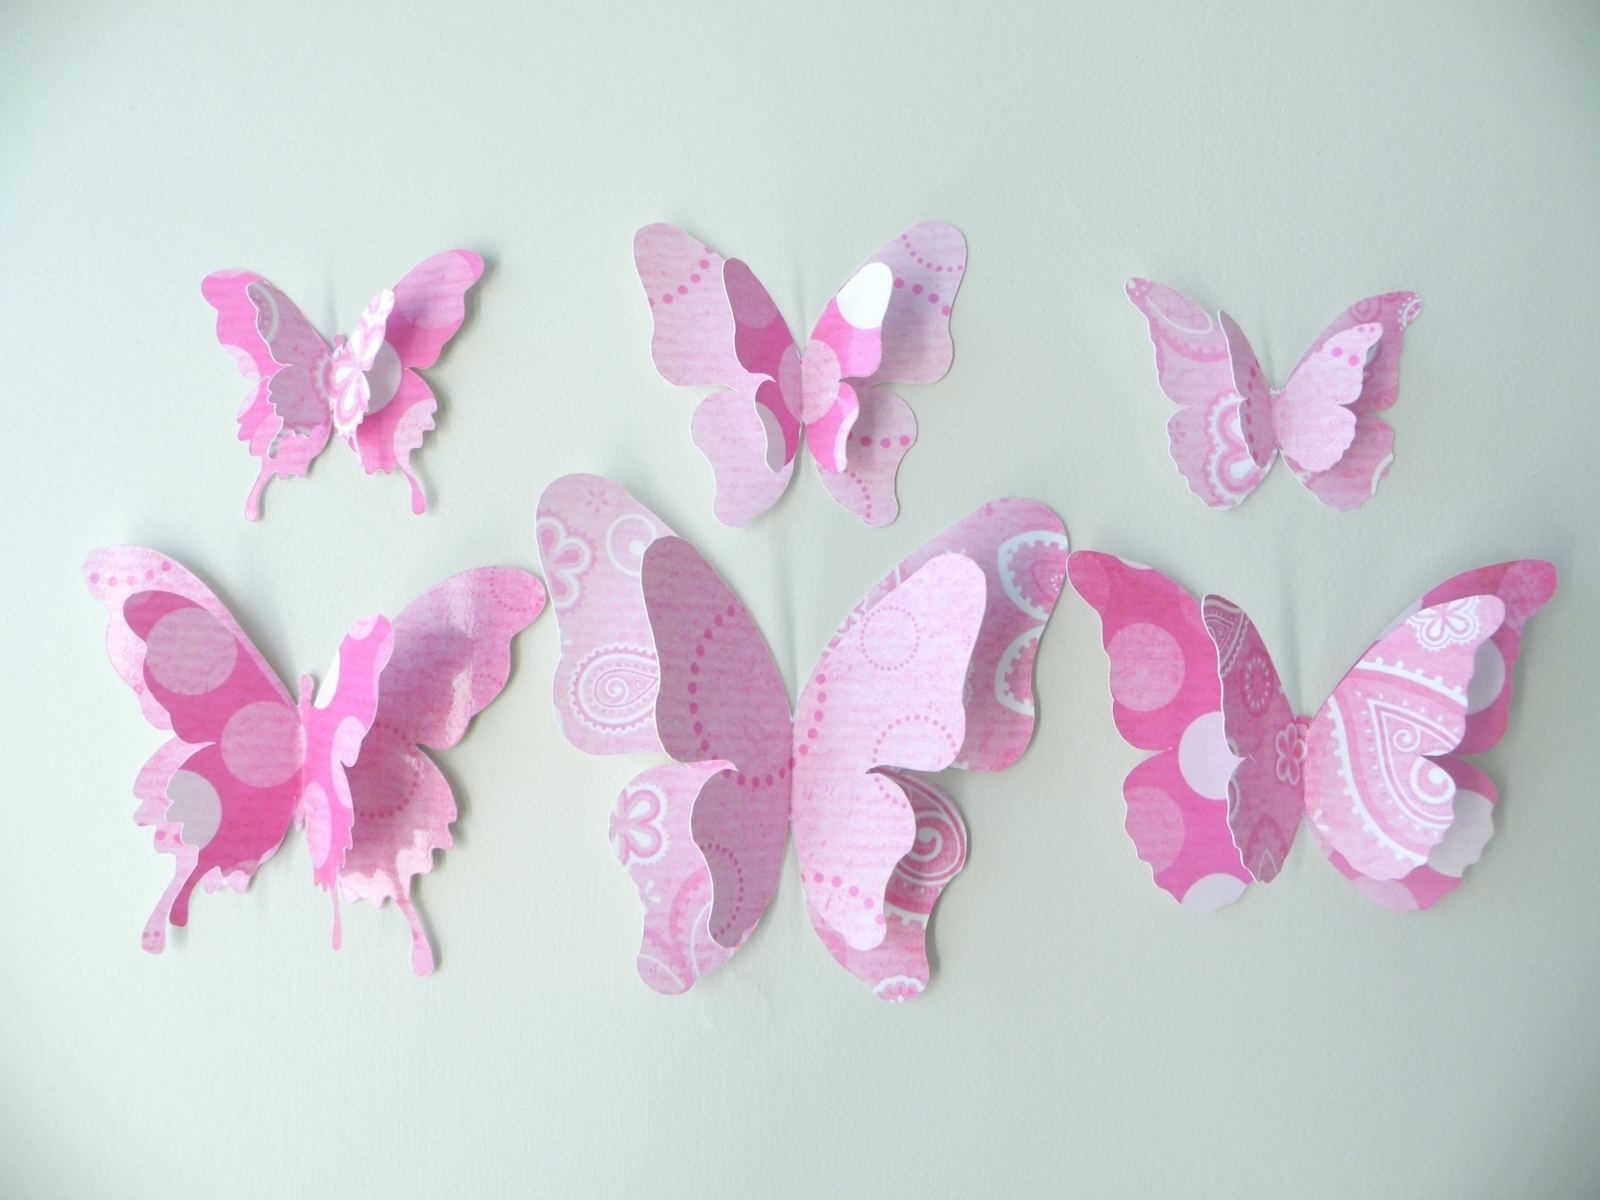 Most Recently Released Sunshiny D Butterfly Wall With Image Butterfly Wall Decor Intended For Pink Butterfly : pink butterfly wall art - www.pureclipart.com